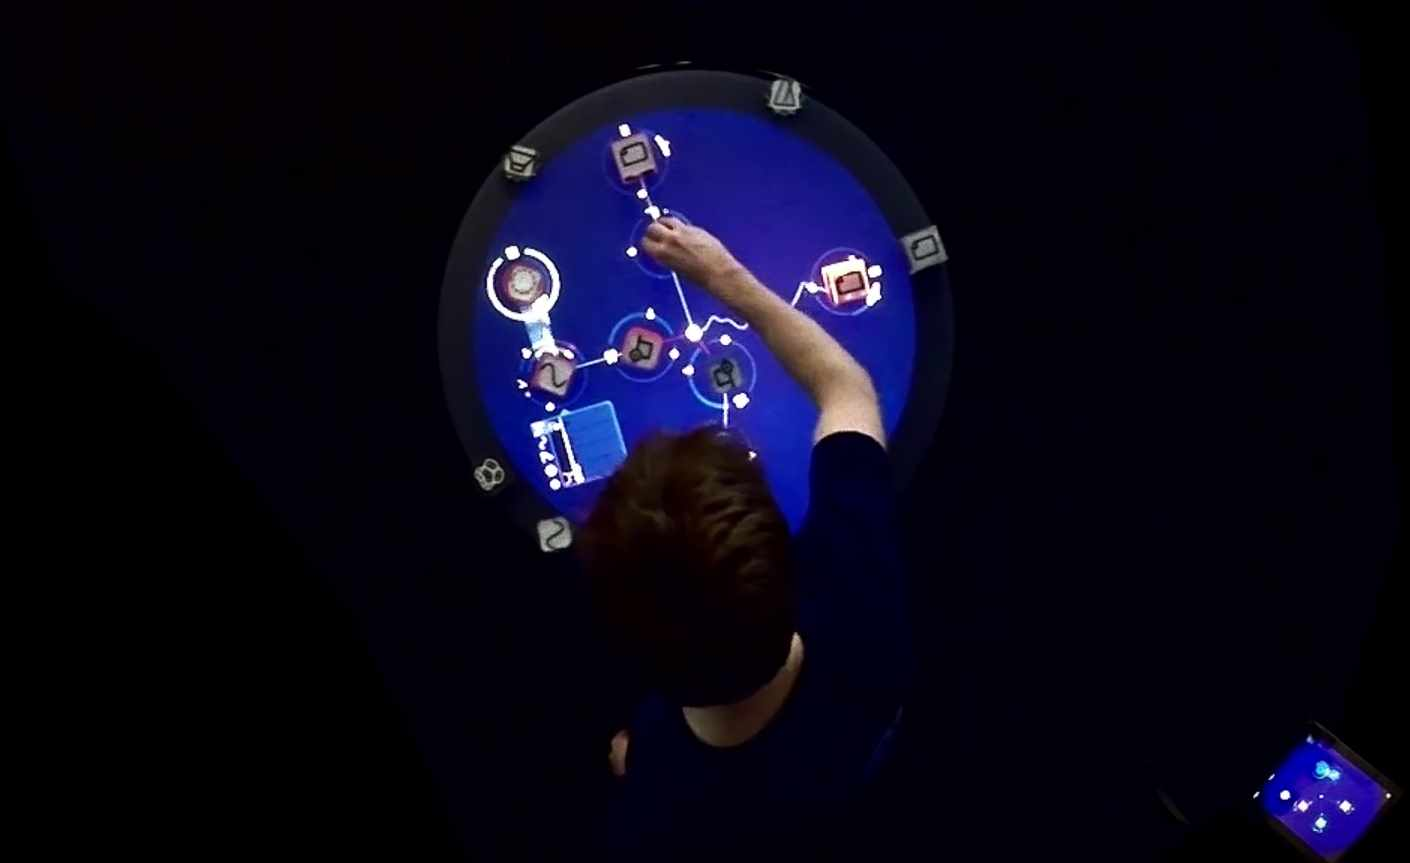 Reactable Live! S6, Upgrading the Incredible.